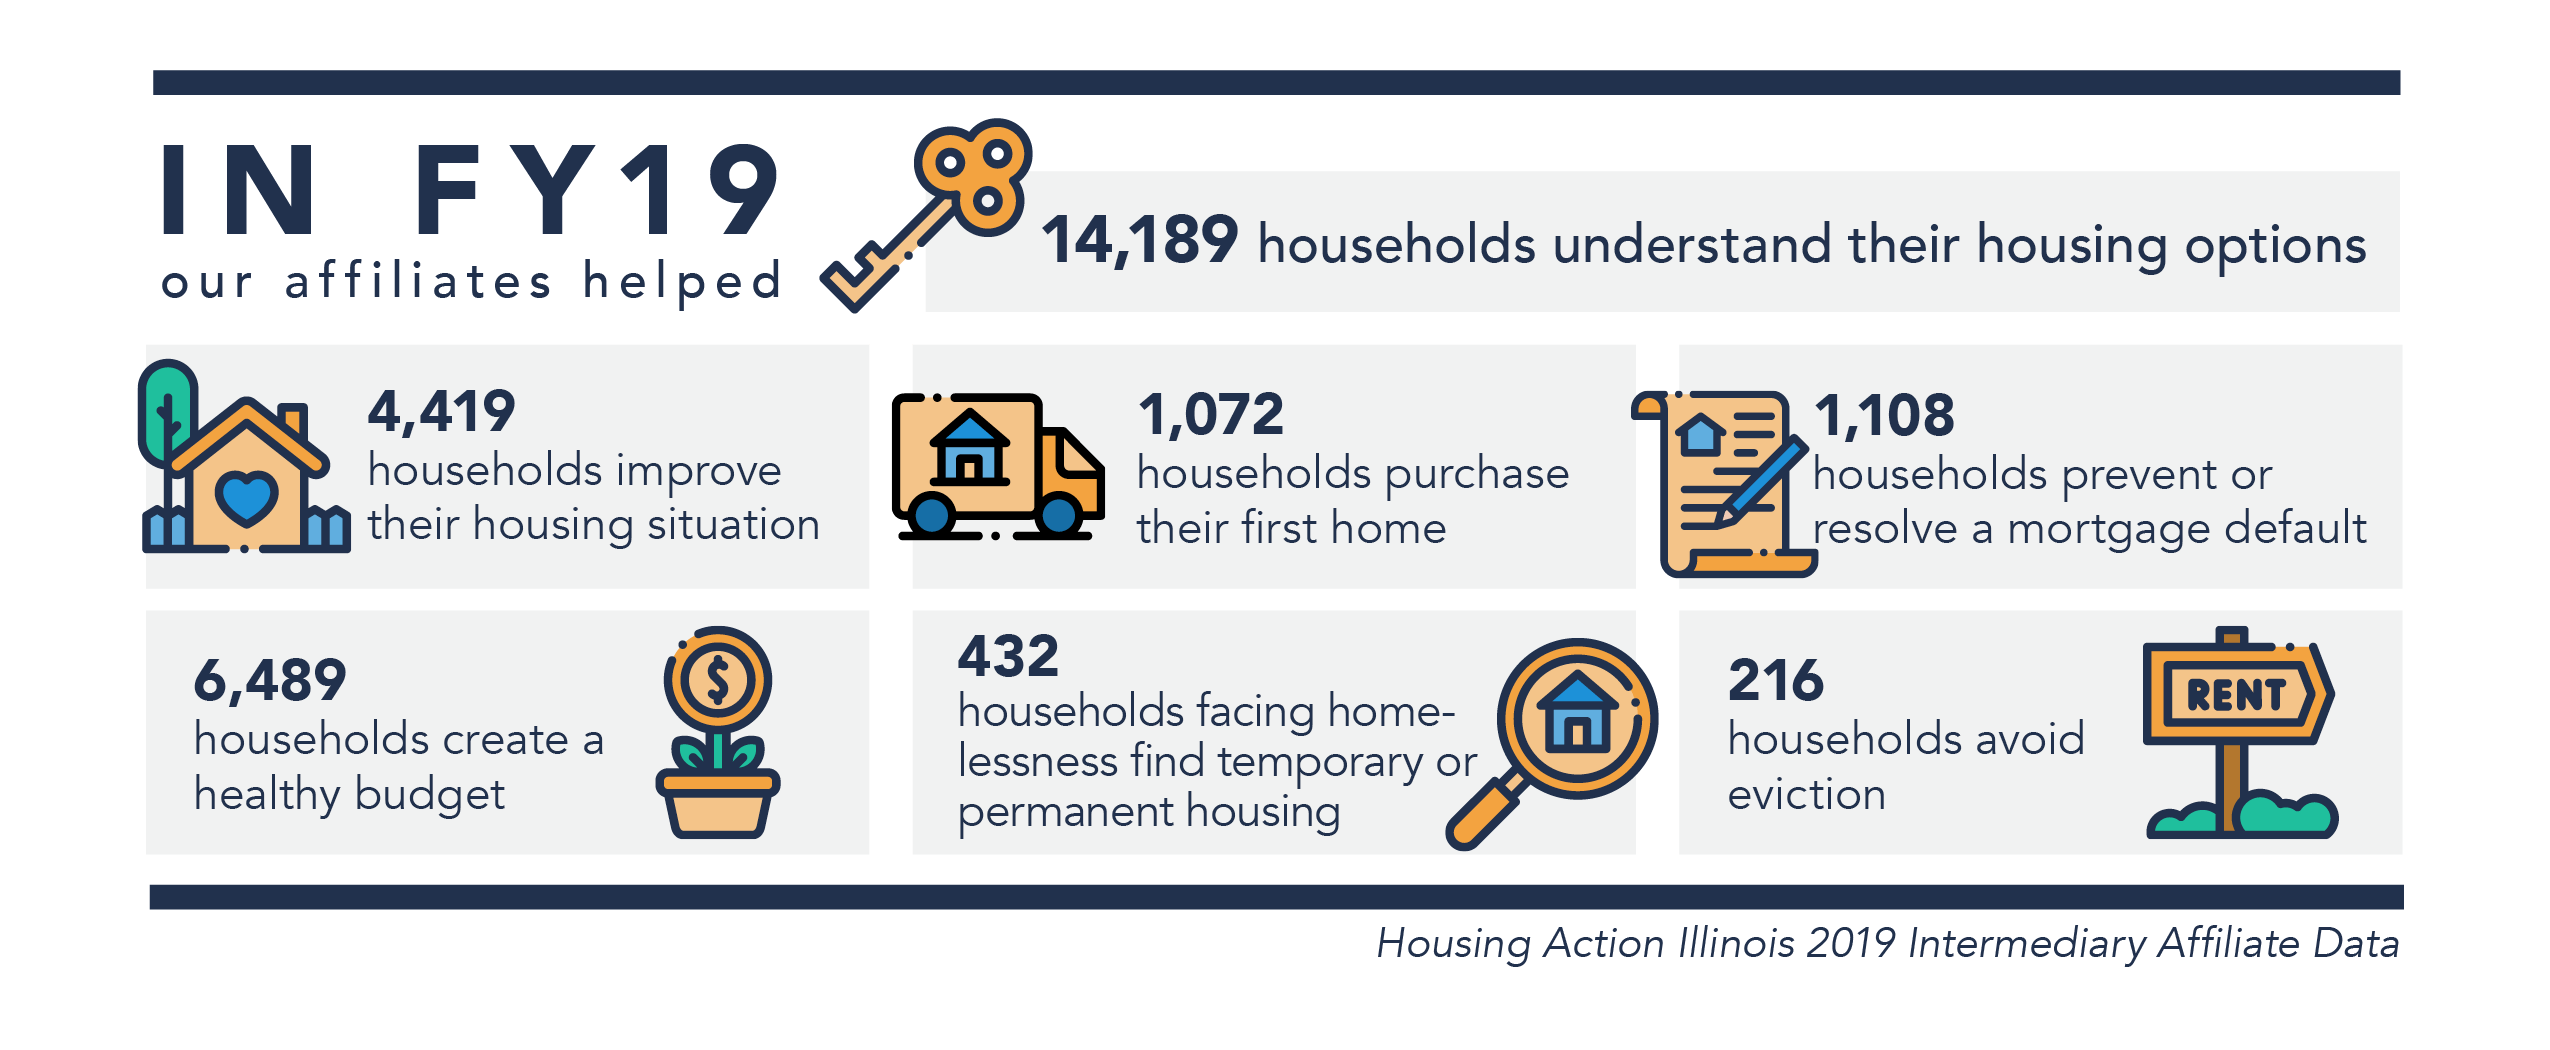 Infographic showing that 14,189 homes received help in understanding what their housing options were during 2019.